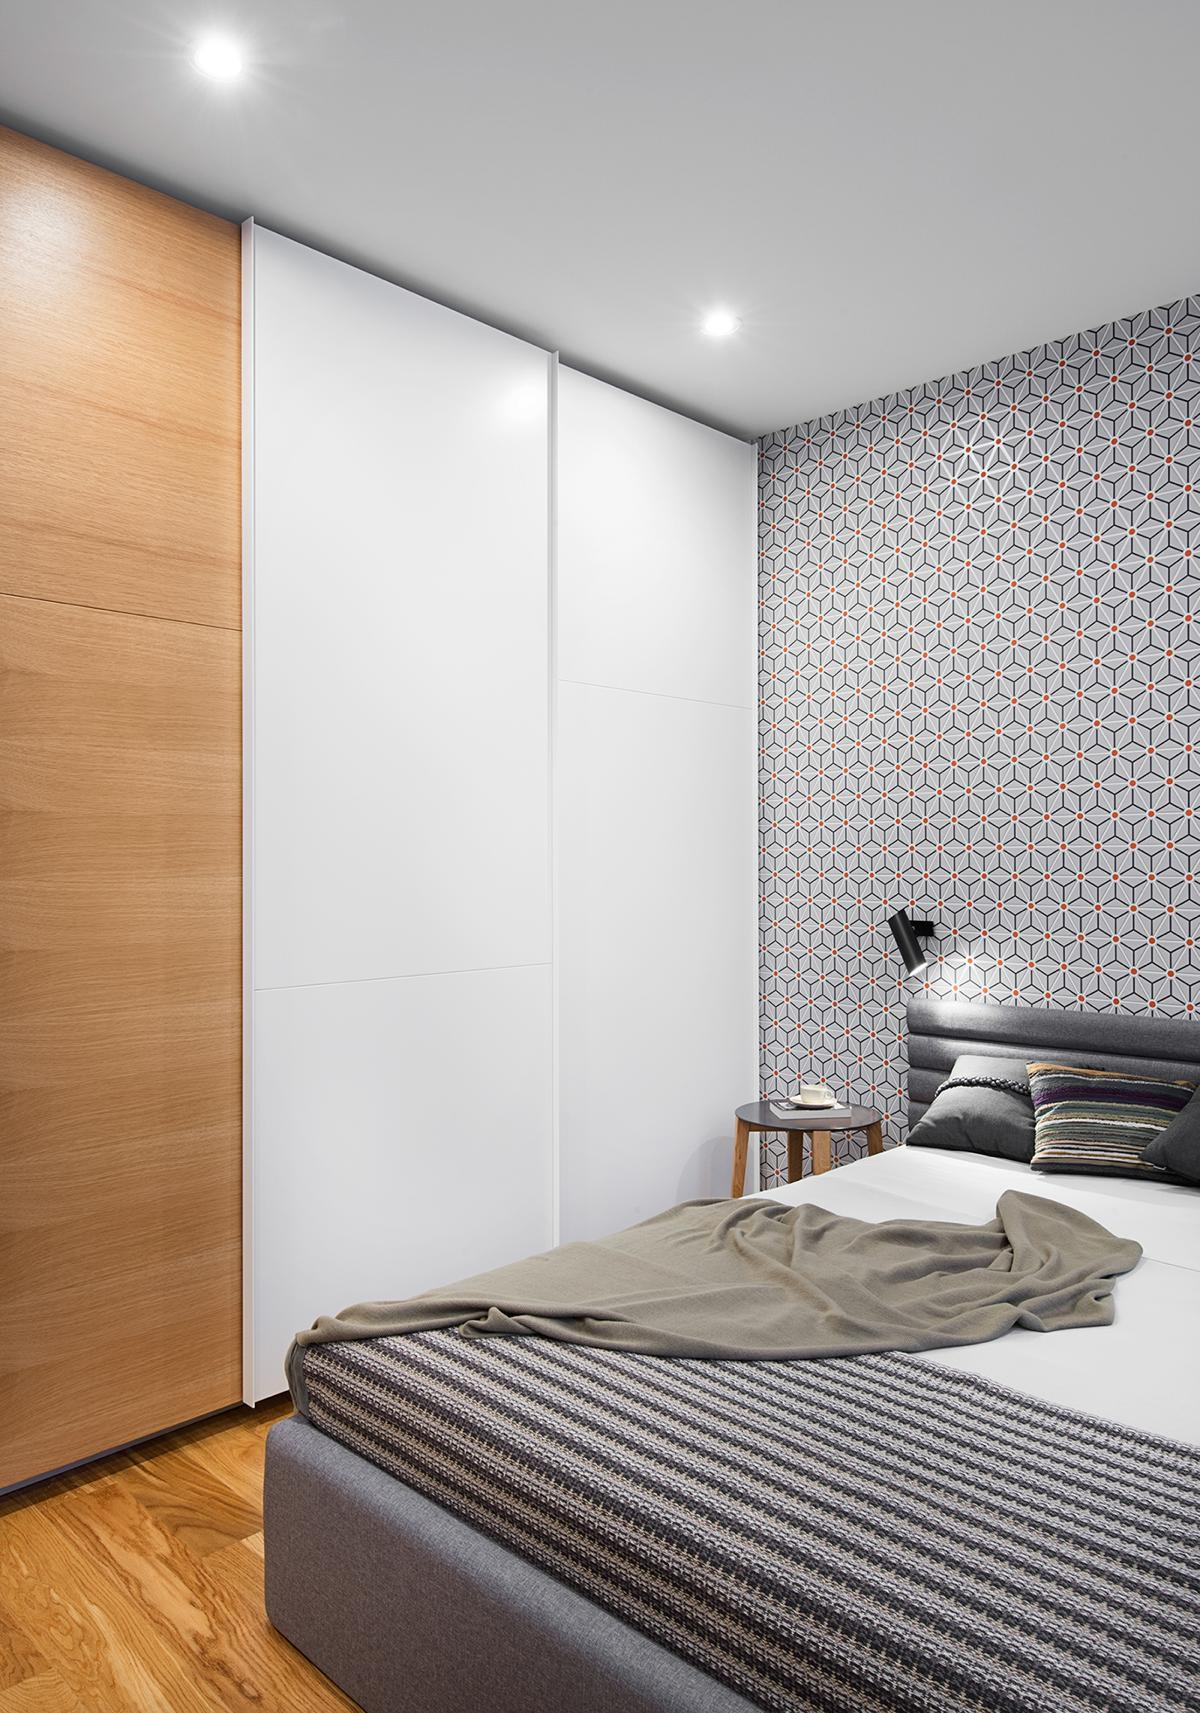 Geometric Bedroom Texture Ideas - A mid century inspired apartment with modern geometric accents